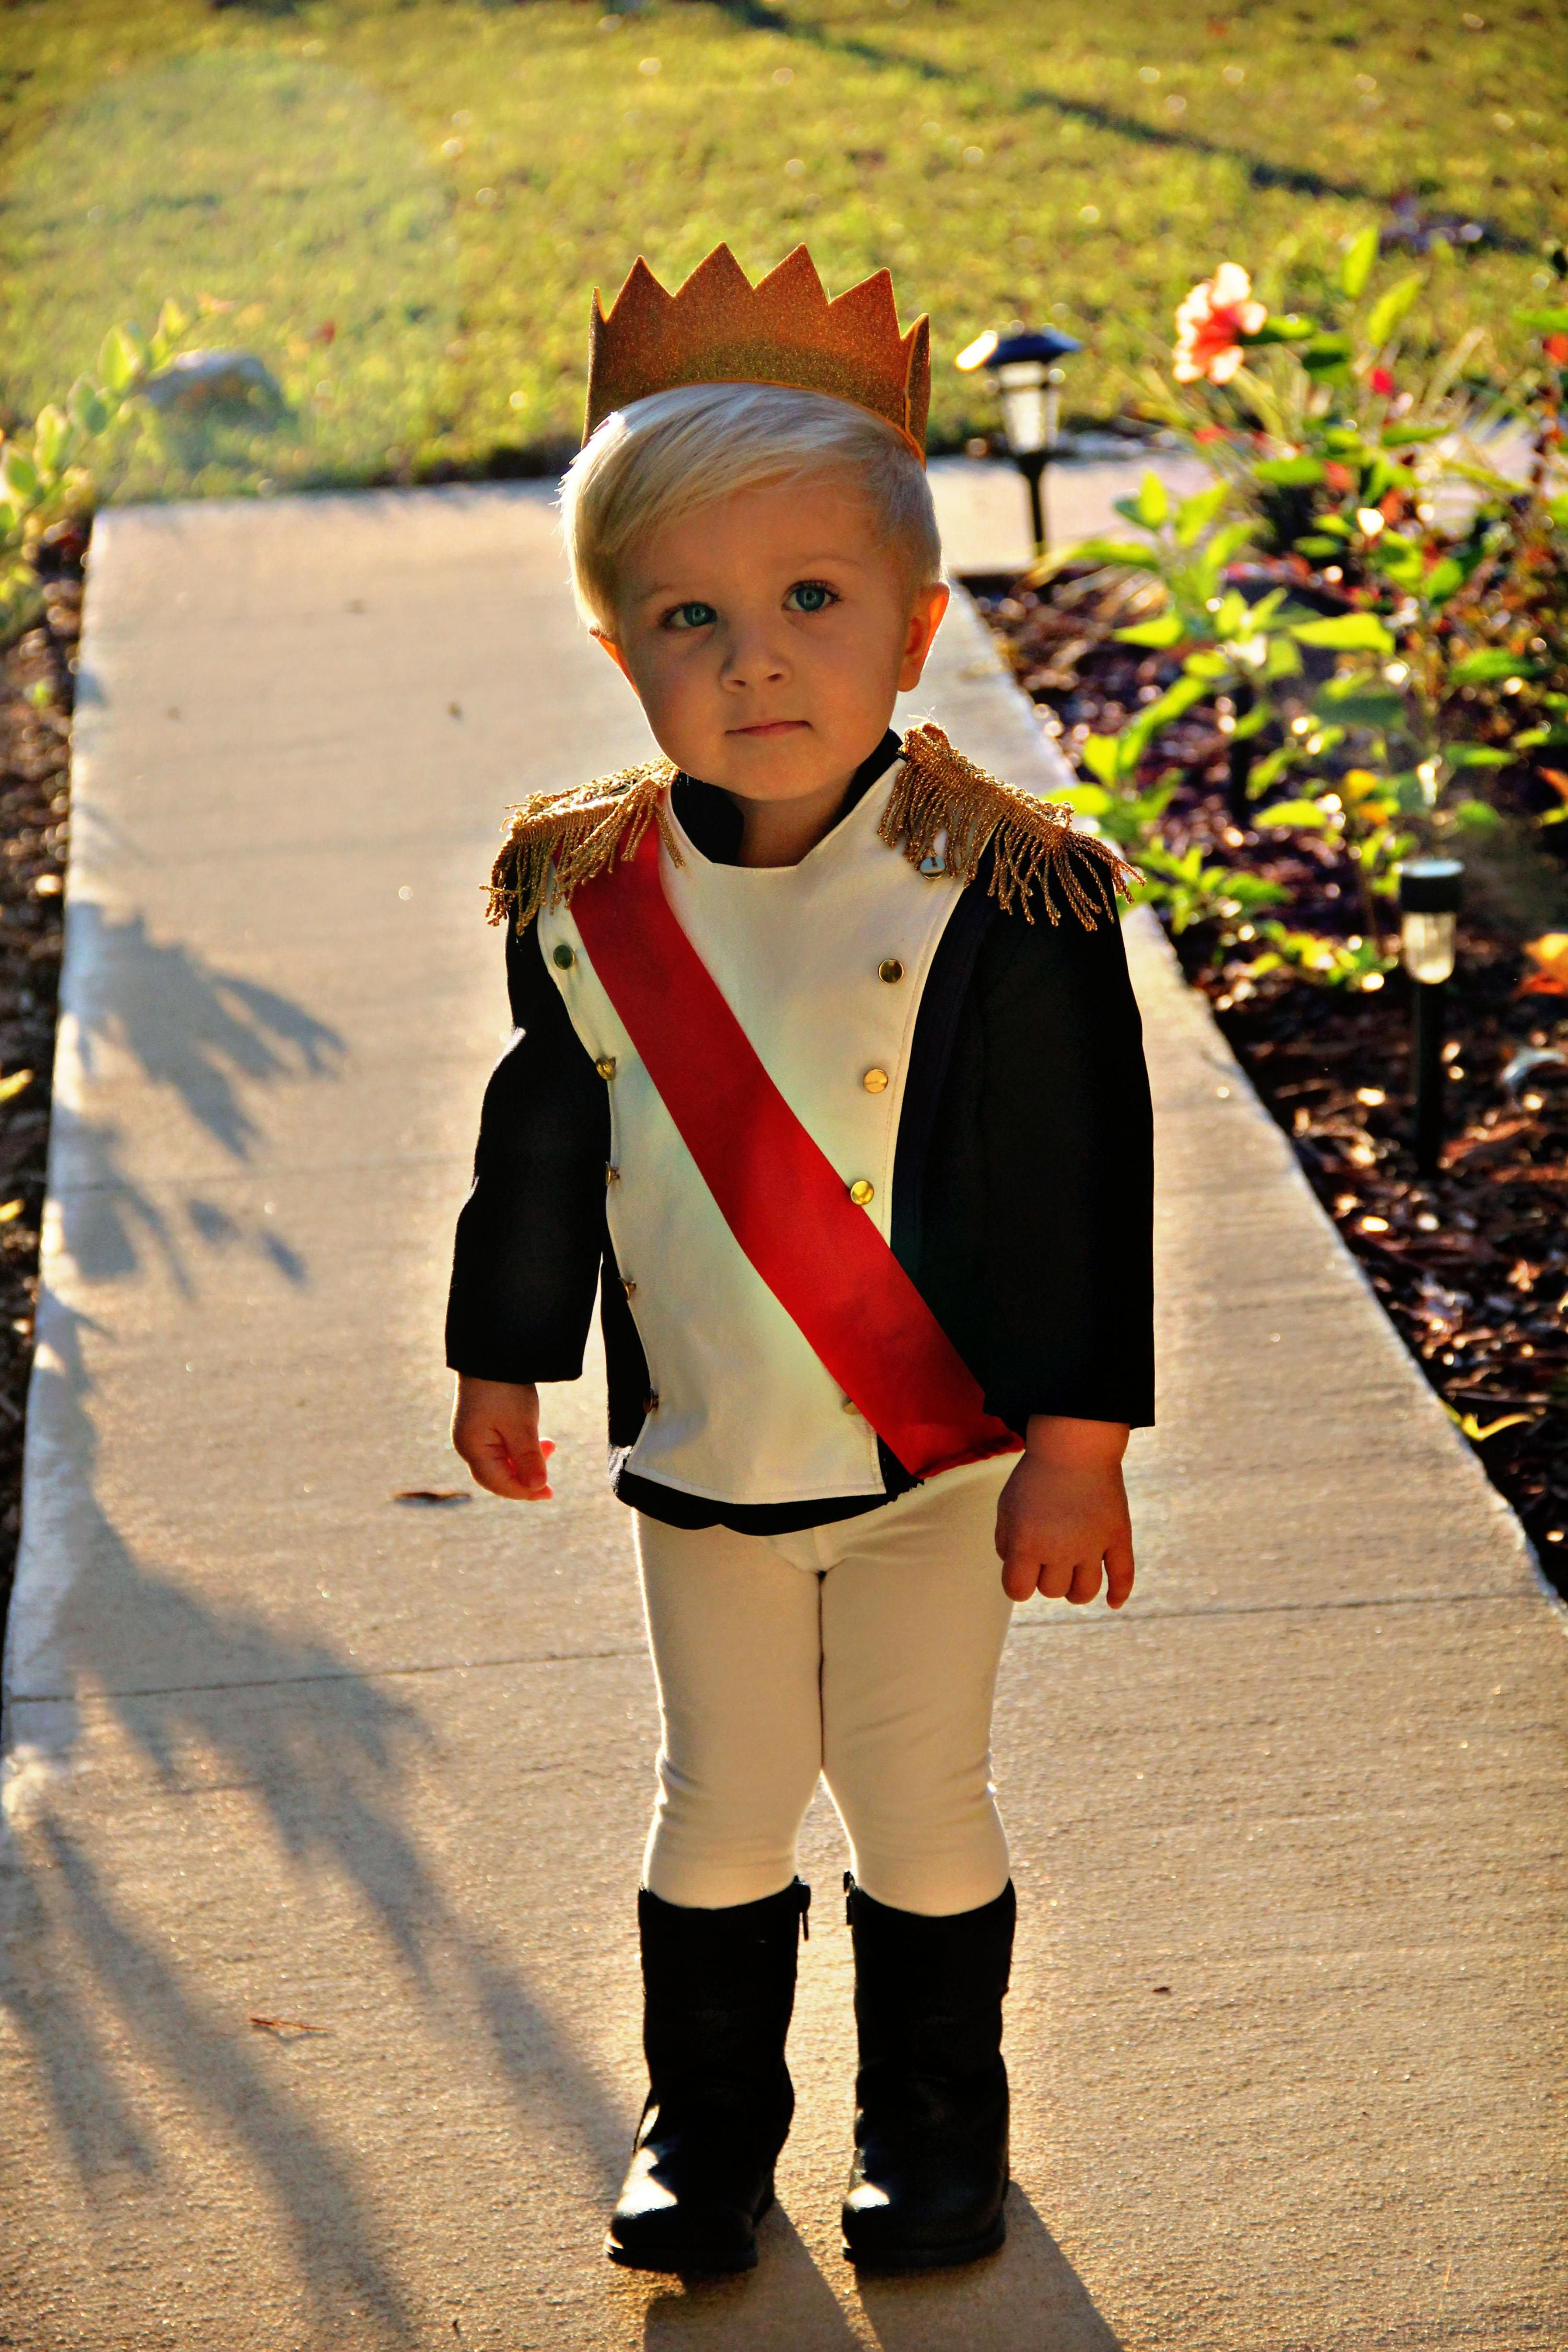 5 Toddler Halloween Costumes That Are So Cute Lynnoak Halloween Boys Boy Halloween Costumes Toddler Boy Costumes